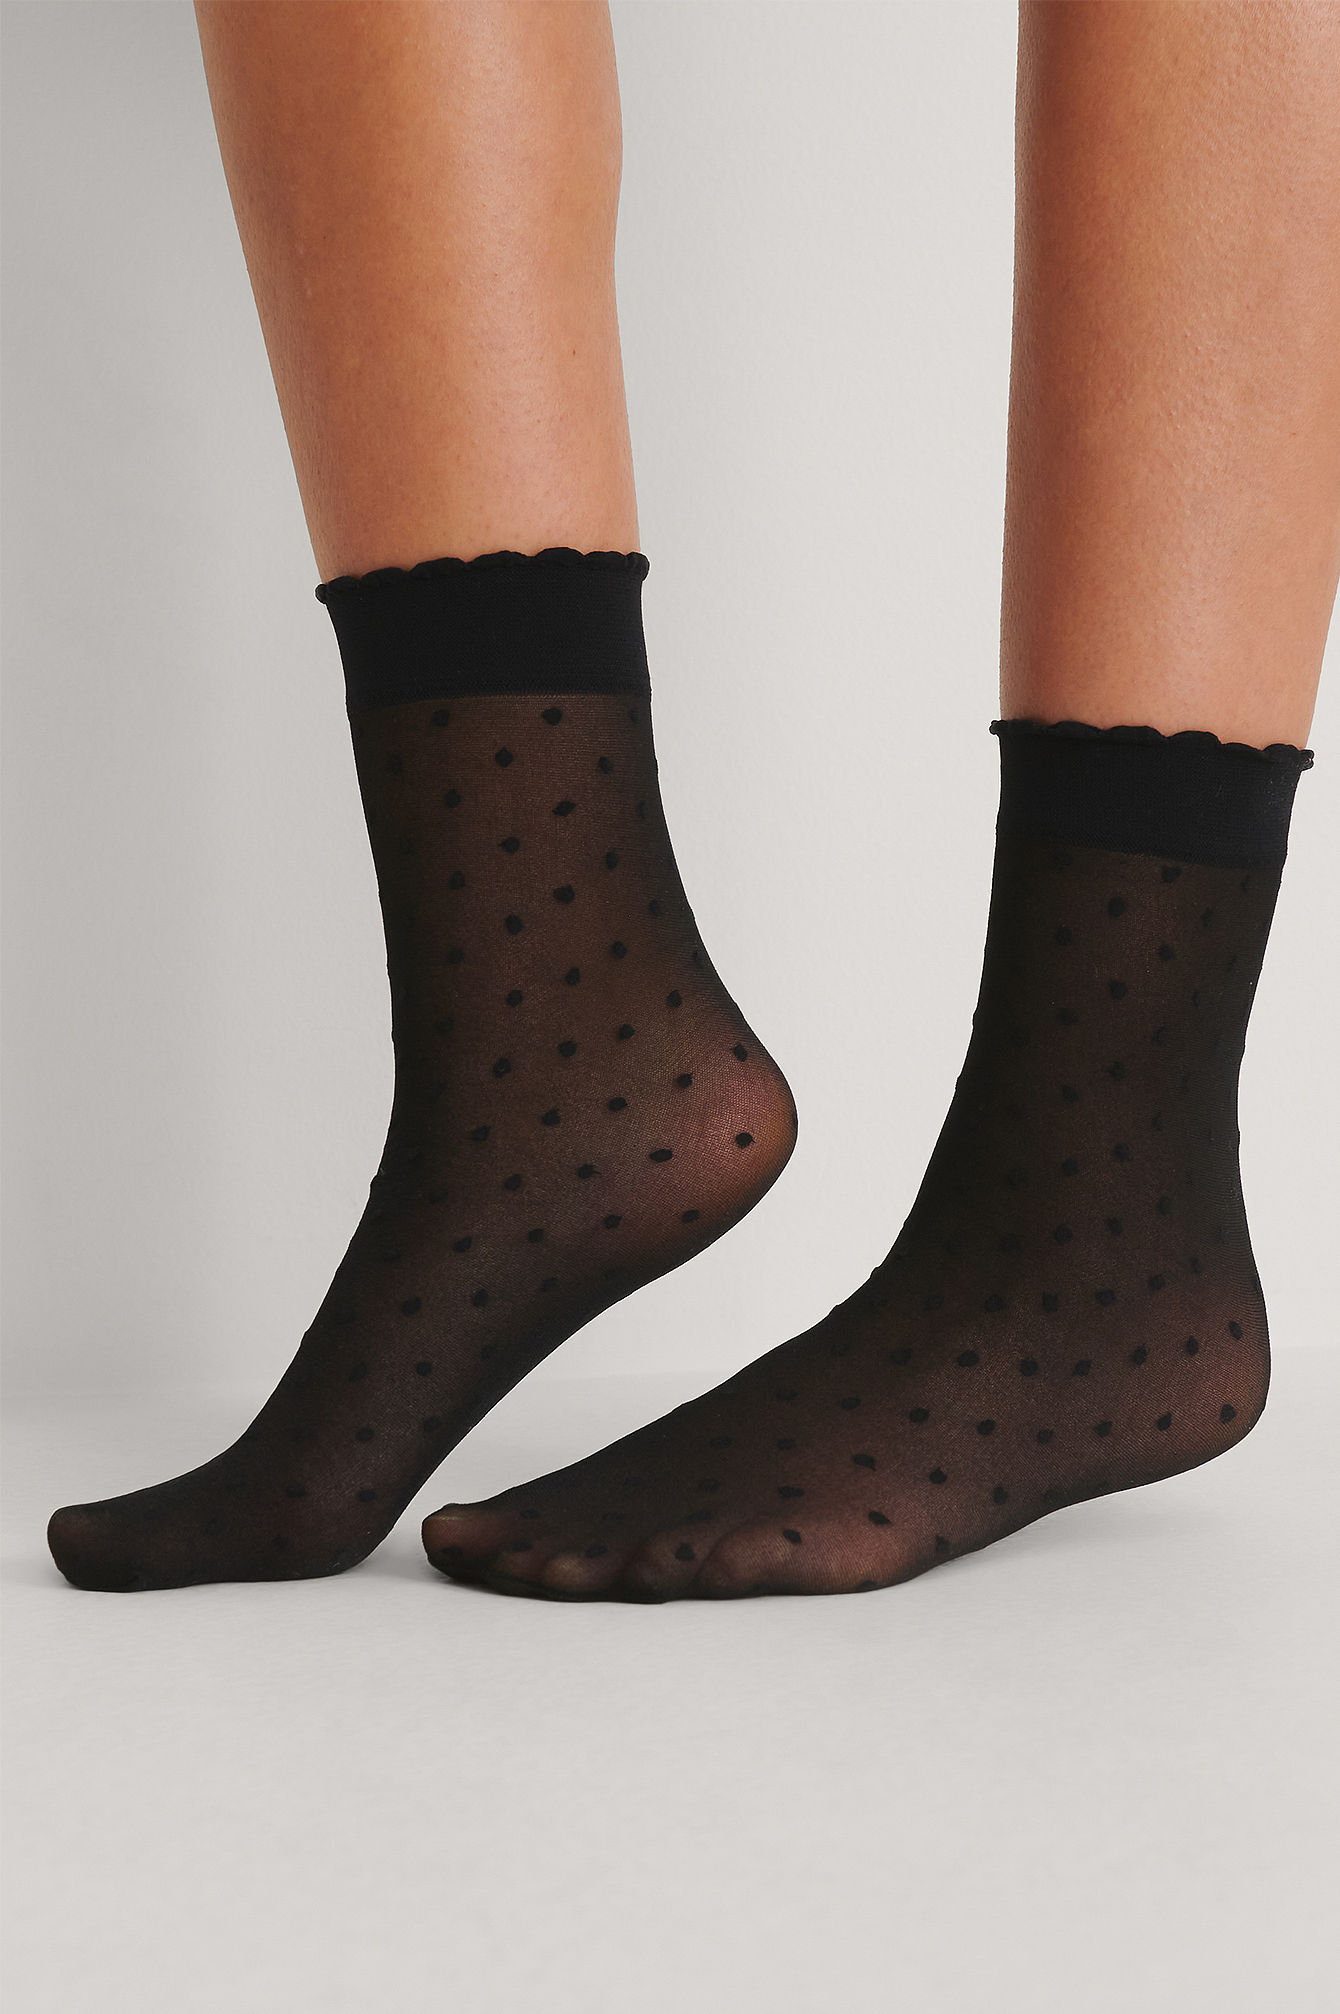 Black Recycled Ankle Dotted Socks 2-pack 30 DEN